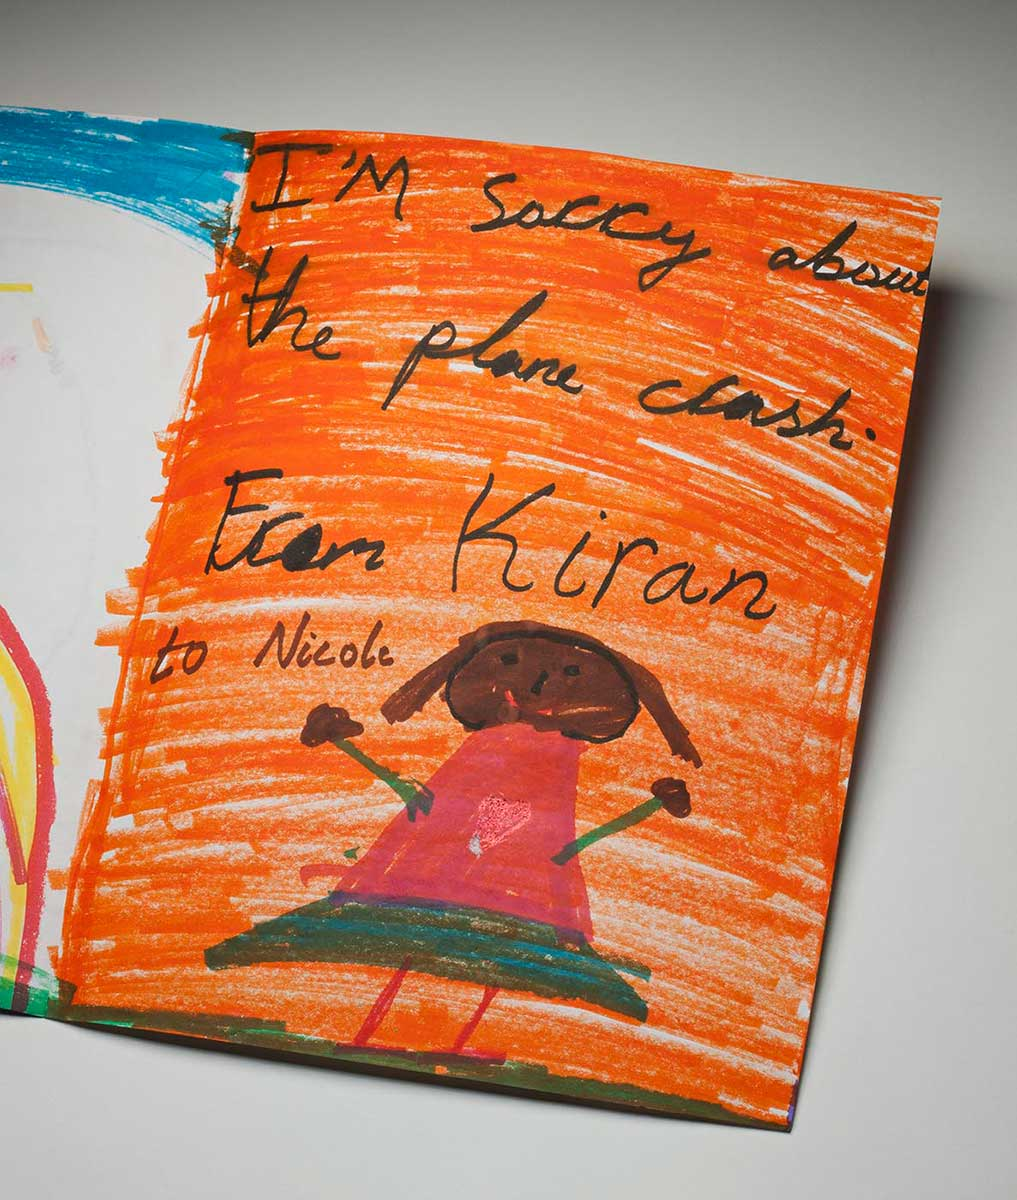 A handmade card showing the right inside view. The background is coloured in orange texta, with the handwritten words 'I'm sorry about the plane crash. From Kiran to Nicole' at top. There is a picture of a girl at the bottom of the card. She wears a pink top with a central heart motif, and a green skirt. She is smiling and her arms are stretched open. - click to view larger image